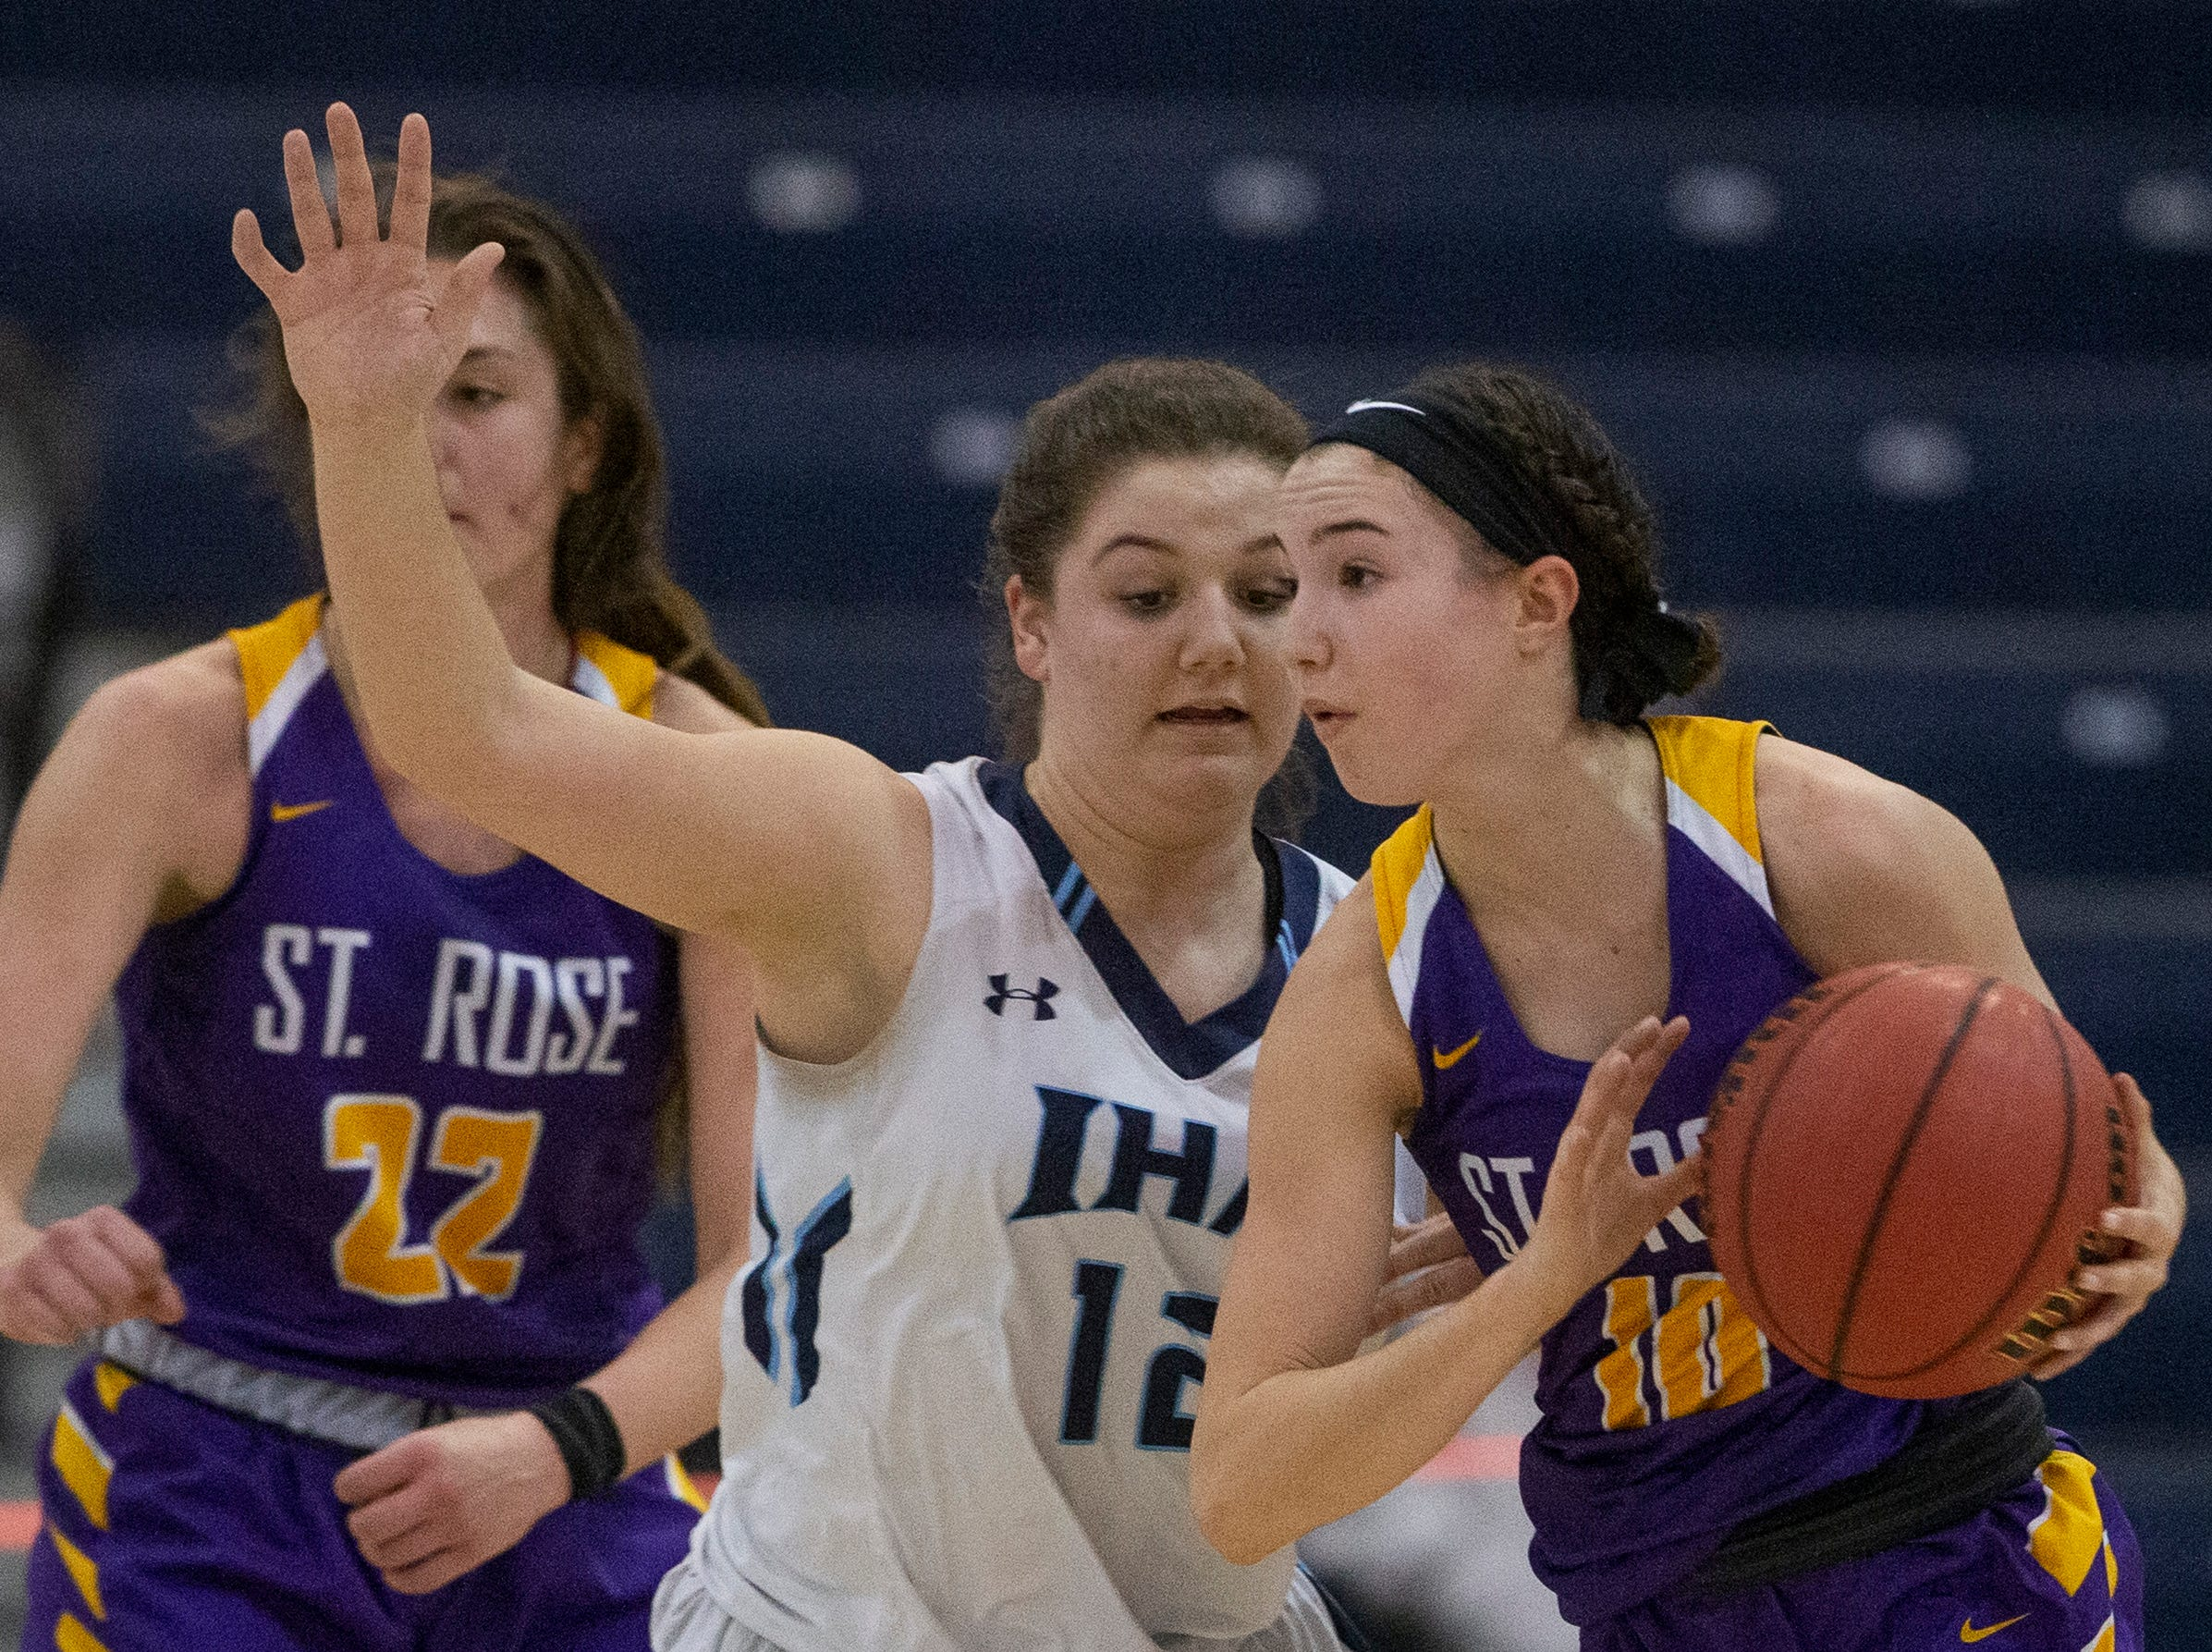 IHA's Samanatha Rinaldi works to cover St. Rose's Abigail Antognoli during first half action. St. Rose Girls Basketball vs Immaculate Heart Academy in Non-Public A Final in Toms River, NJ on March 9, 2019.